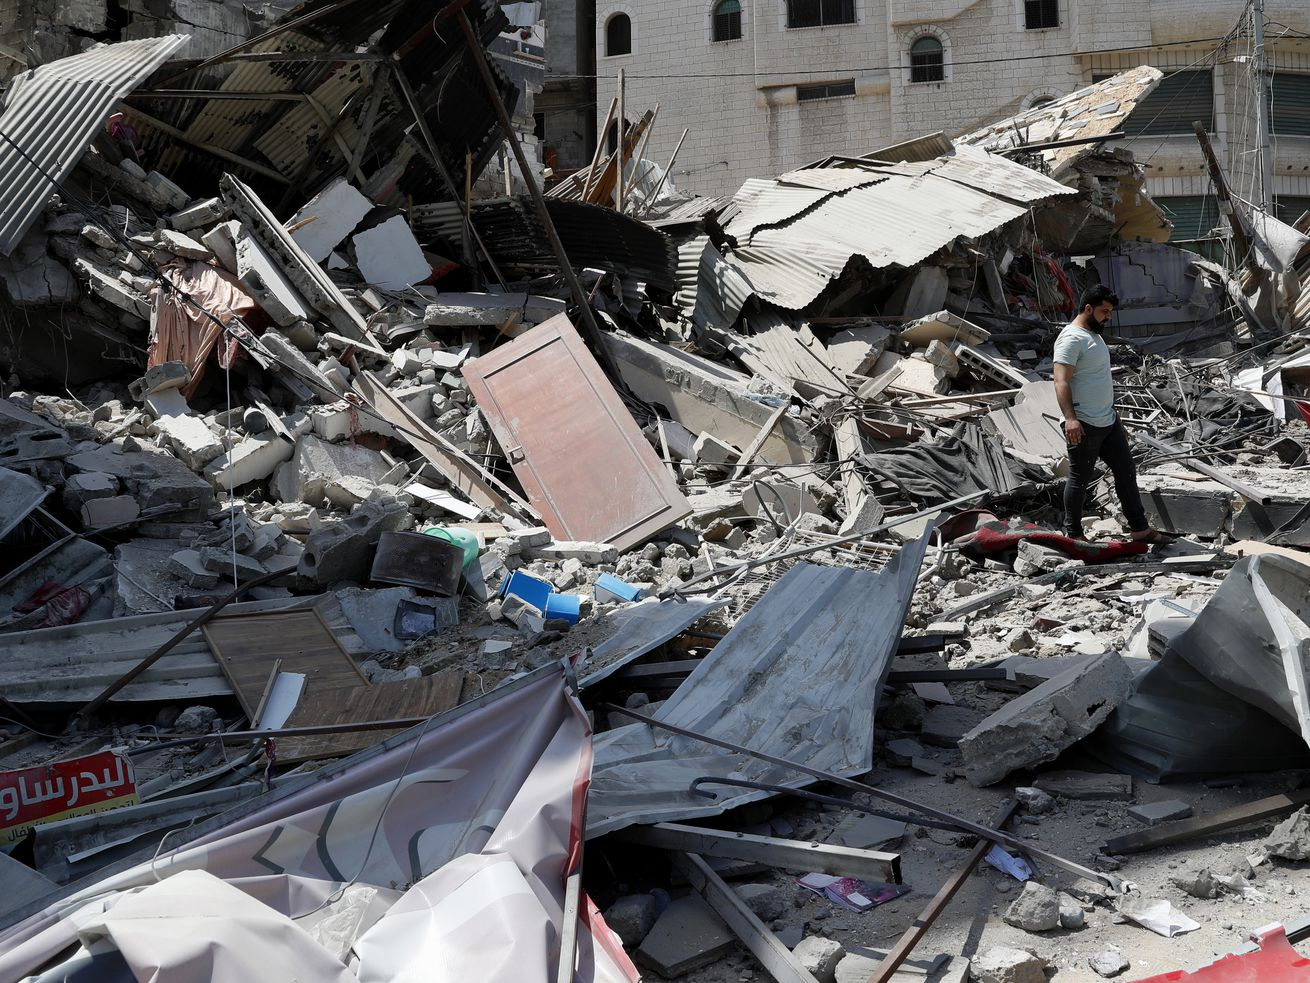 A man inspects the rubble of destroyed residential building which was hit by Israeli airstrikes, in Gaza City, Thursday, May 20, 2021.